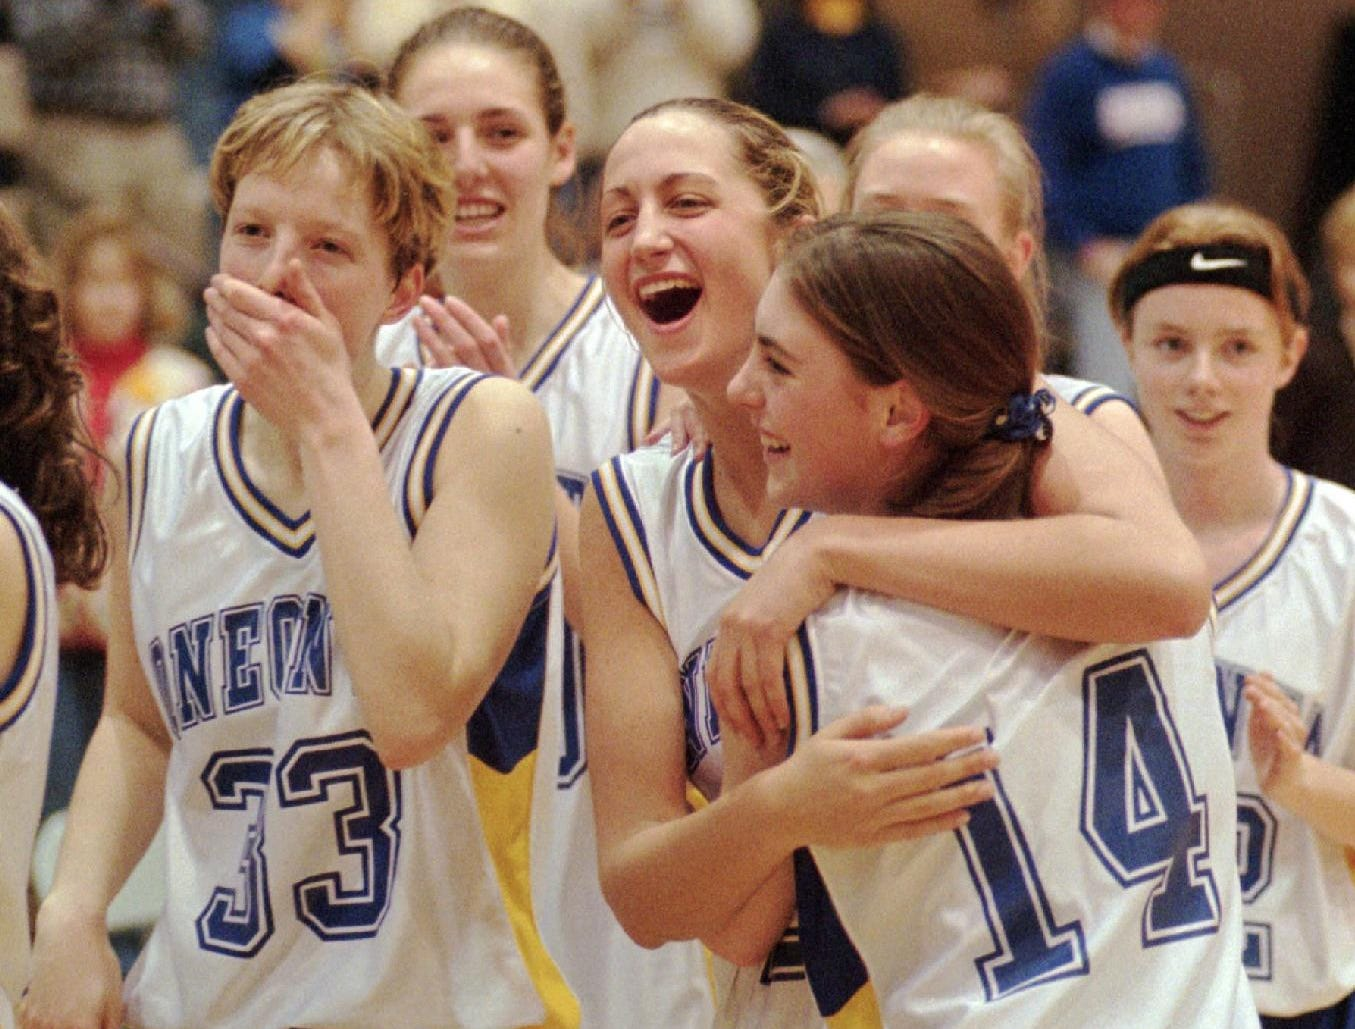 Oneonta players celebrate after winning the state championship in Troy, N.Y. on Sunday, March 22, 1998.